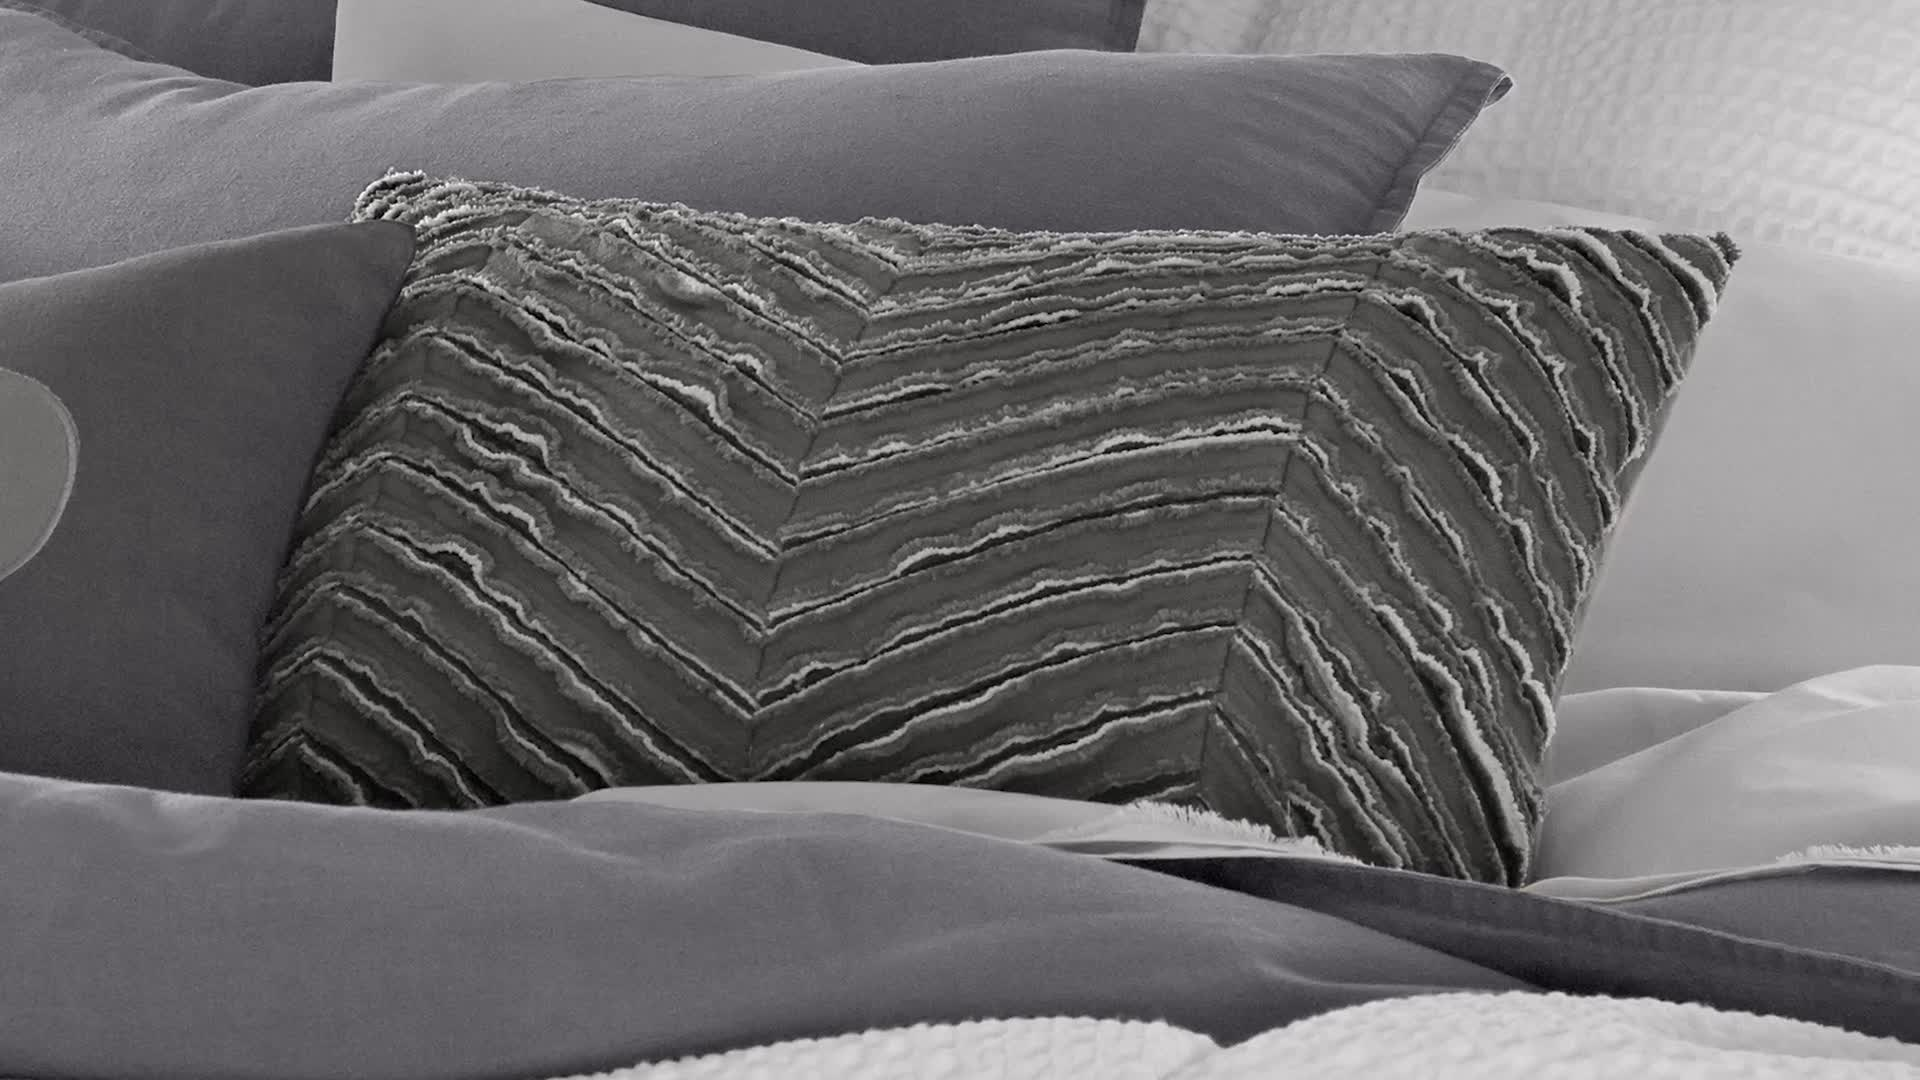 Watch the video for Kenneth Cole Reaction Home Mineral Duvet Cover